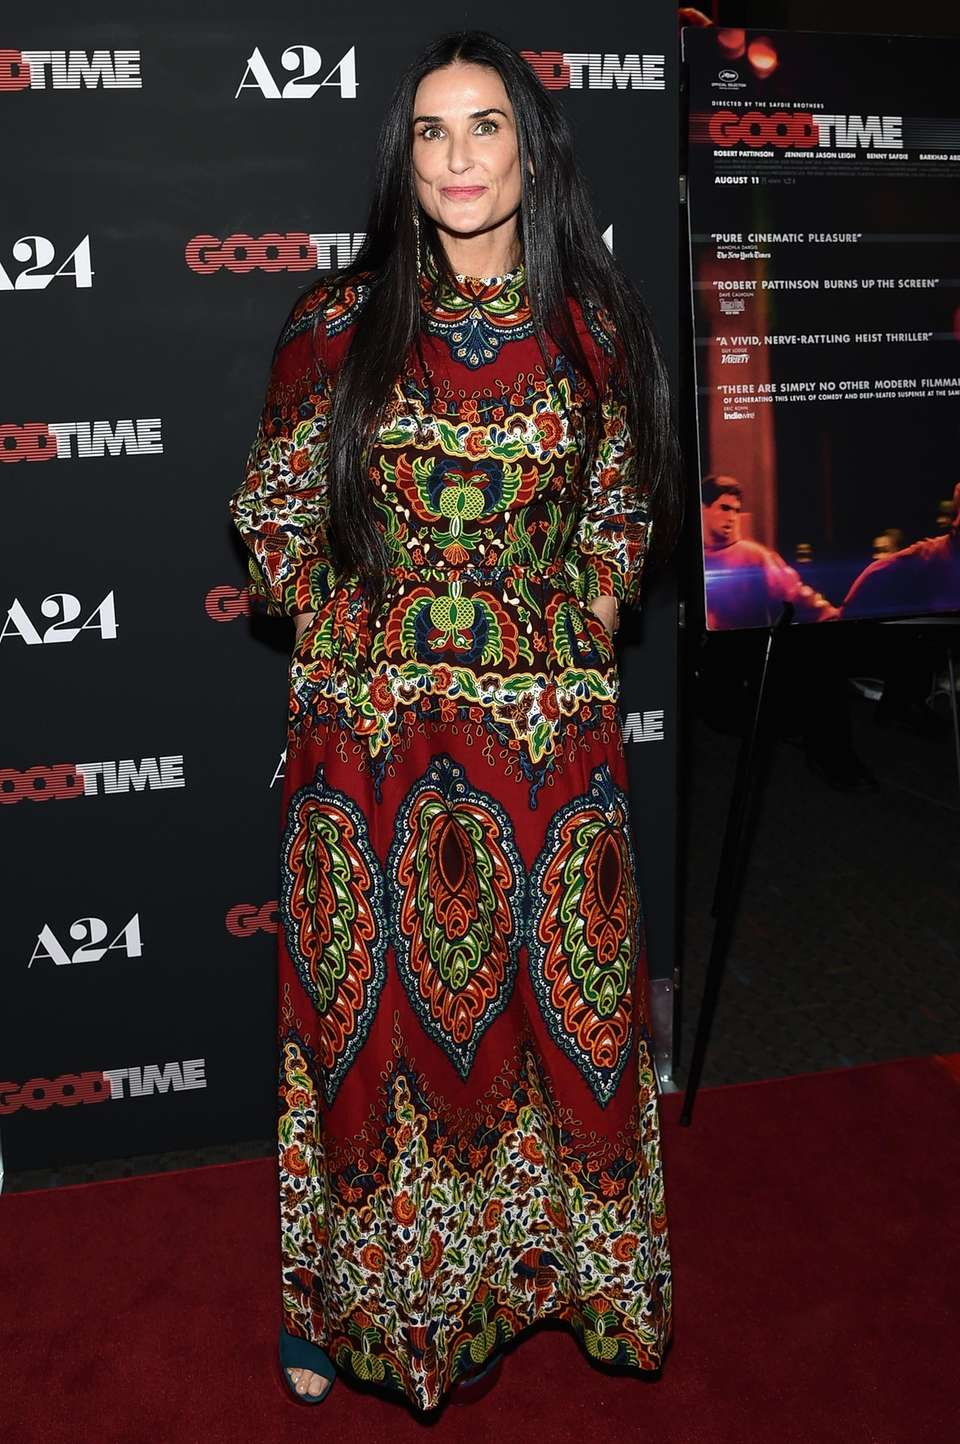 Demi Moore attends the premiere of her new